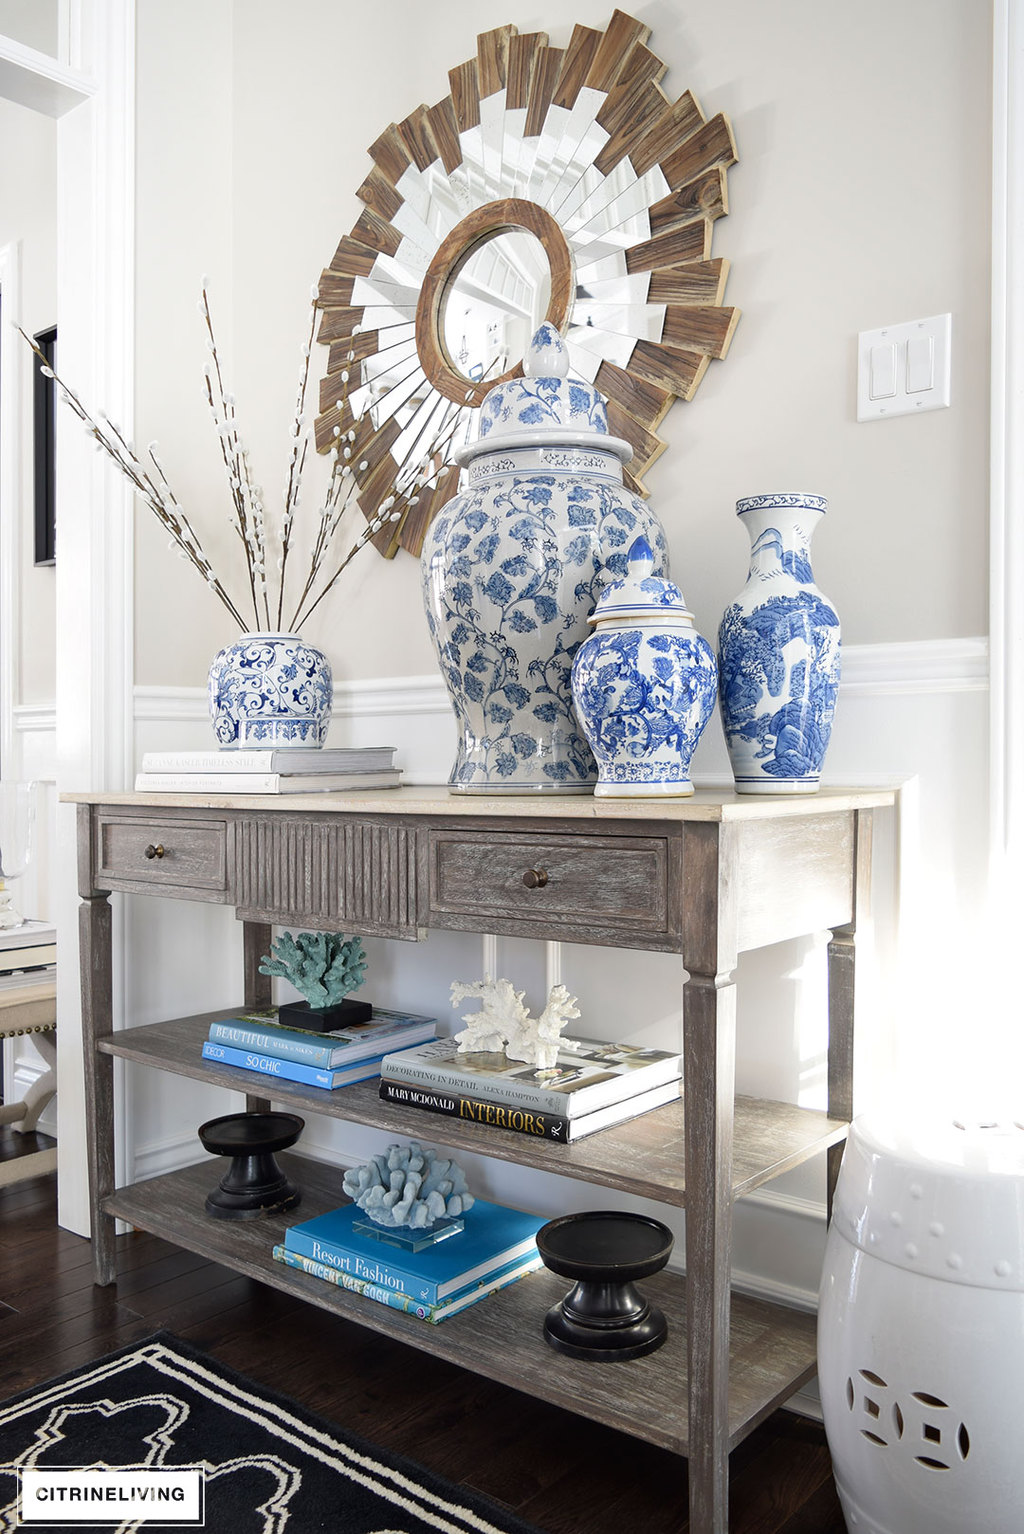 I Chose To Use The Same Idea With This Setup, Making A Statement With  Mostly Monochromatic Items. I Did Use Blue And White Last Spring In Our  Entrance As ...